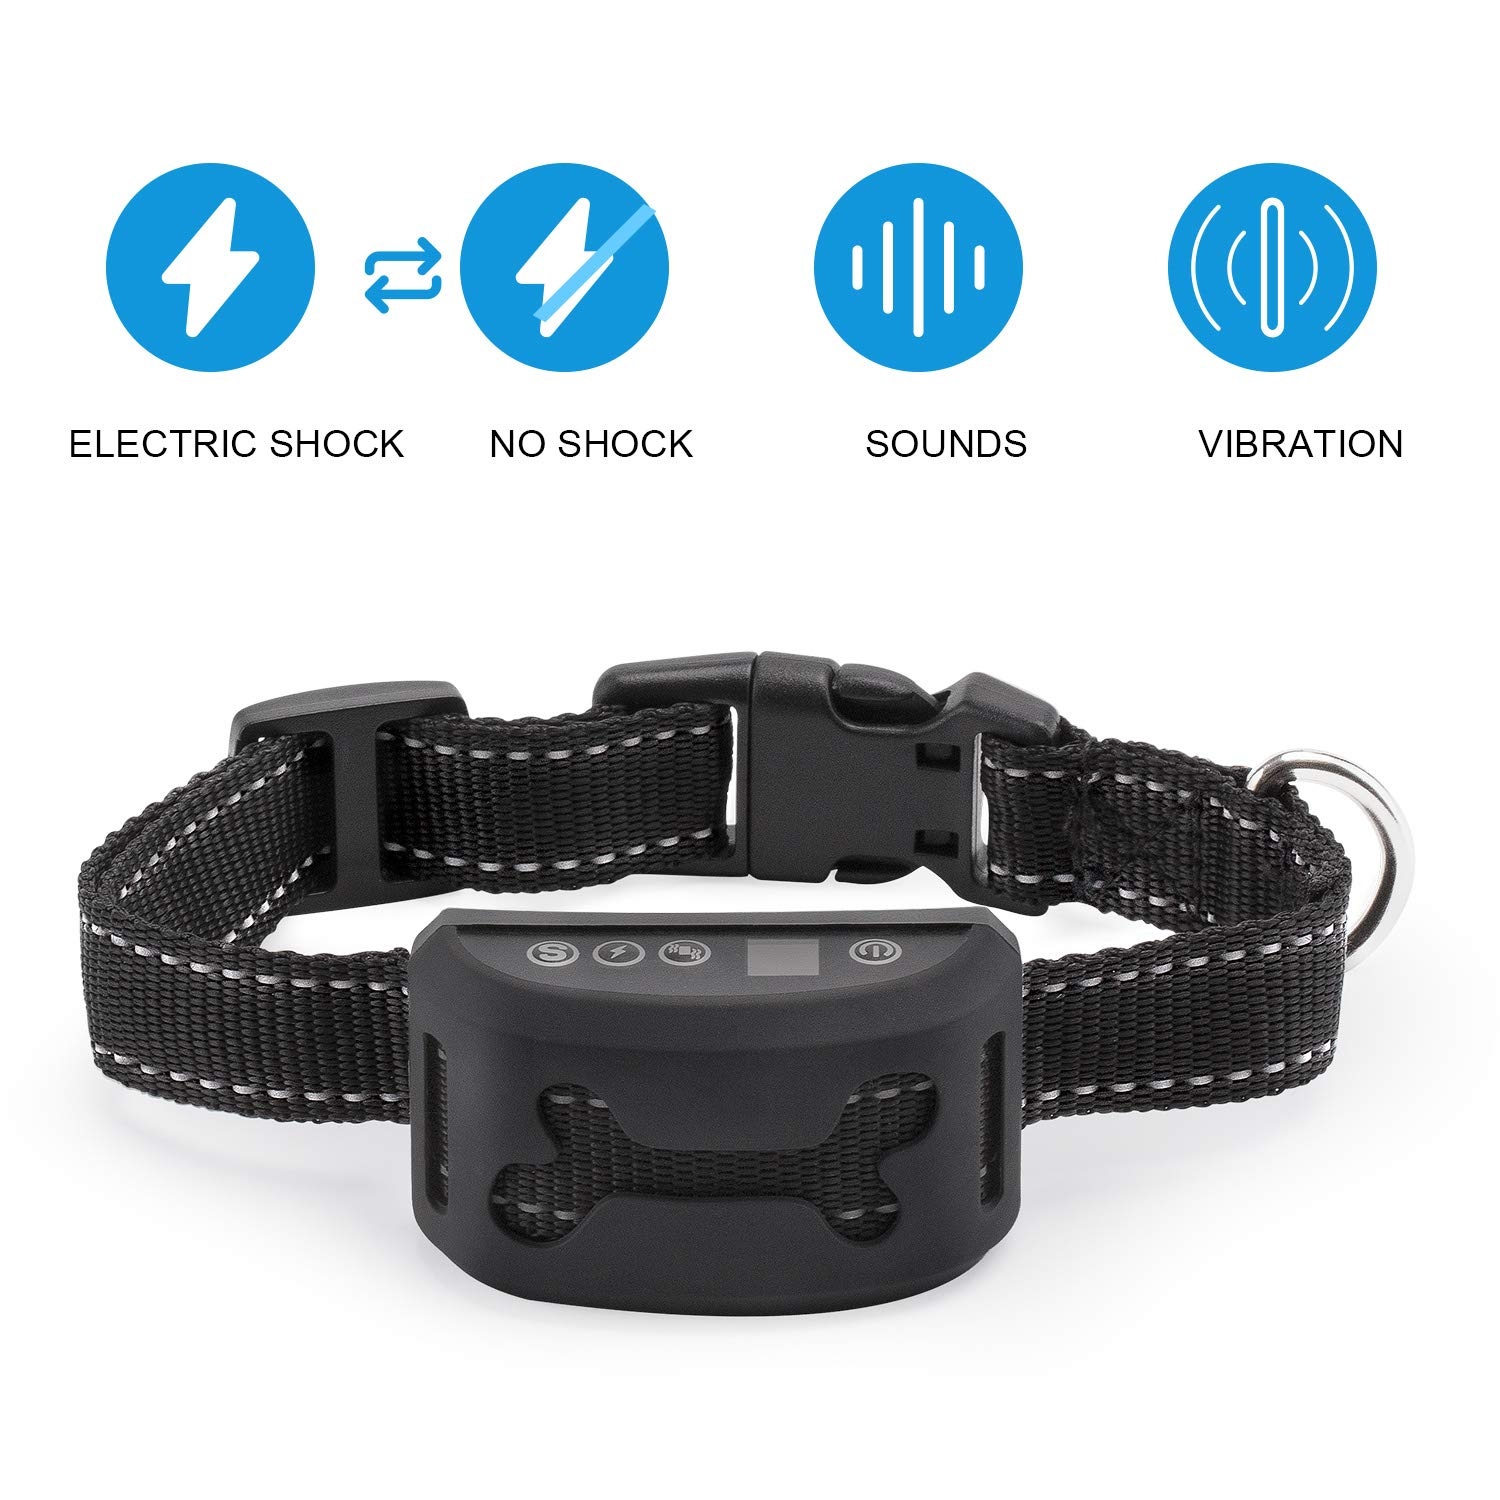 Bark Collar -2018 Smart Chip-Dog Shock Anti-Barking Collar with Beep, Vibration and Harmless Shock. No Bark Control for Small/Medium/Large Dogs, 7 Adjustable Levels